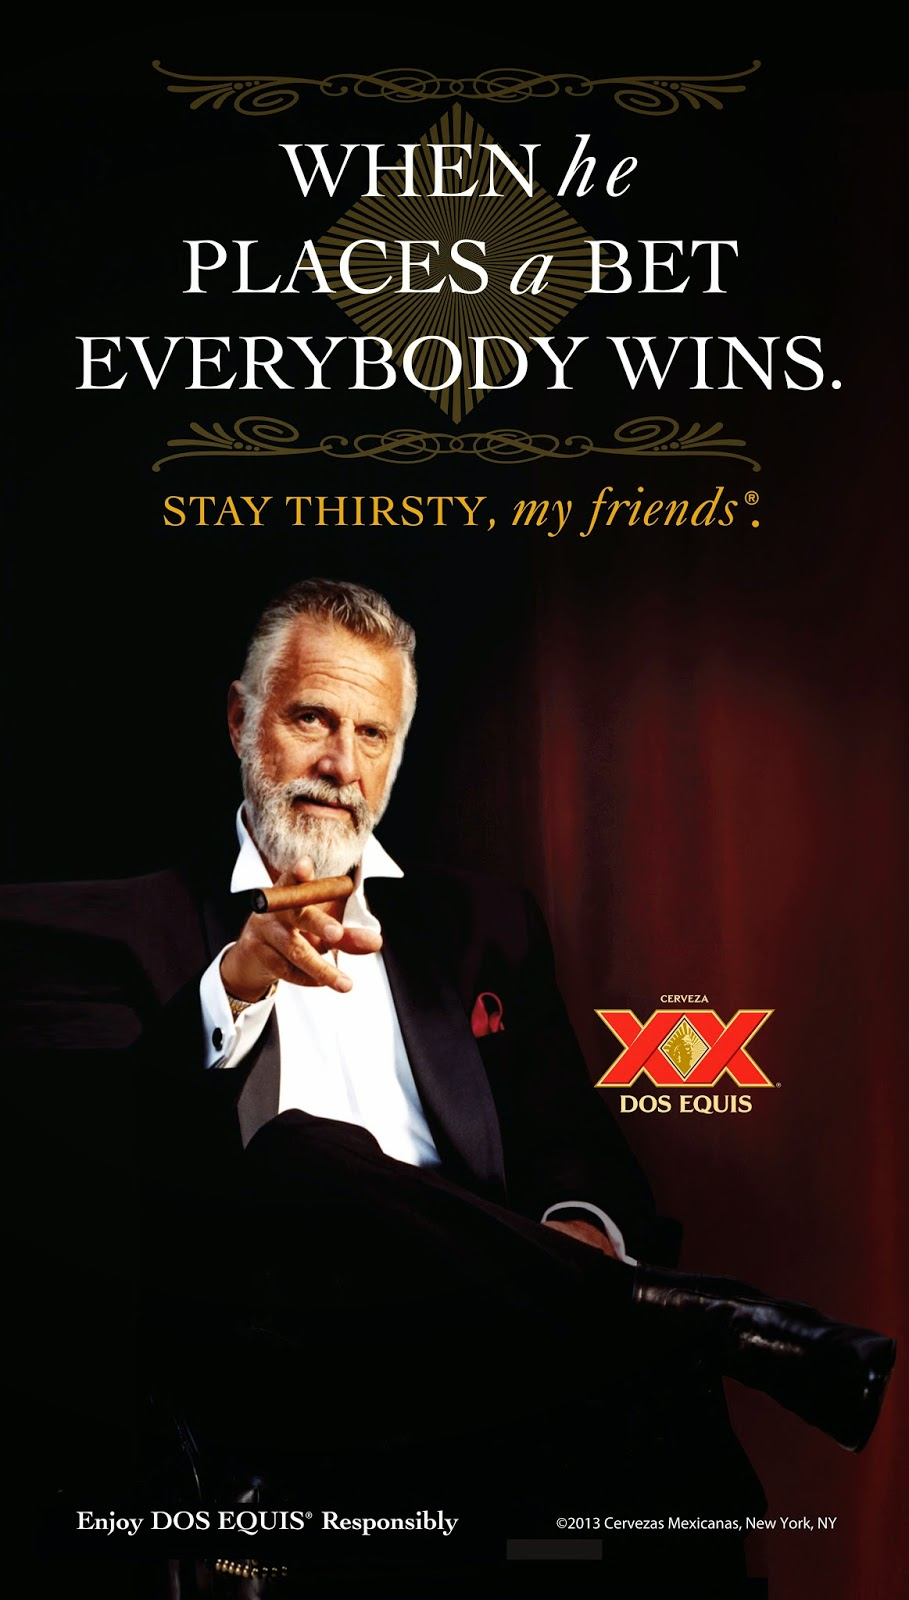 dos equis wallpaper - photo #24